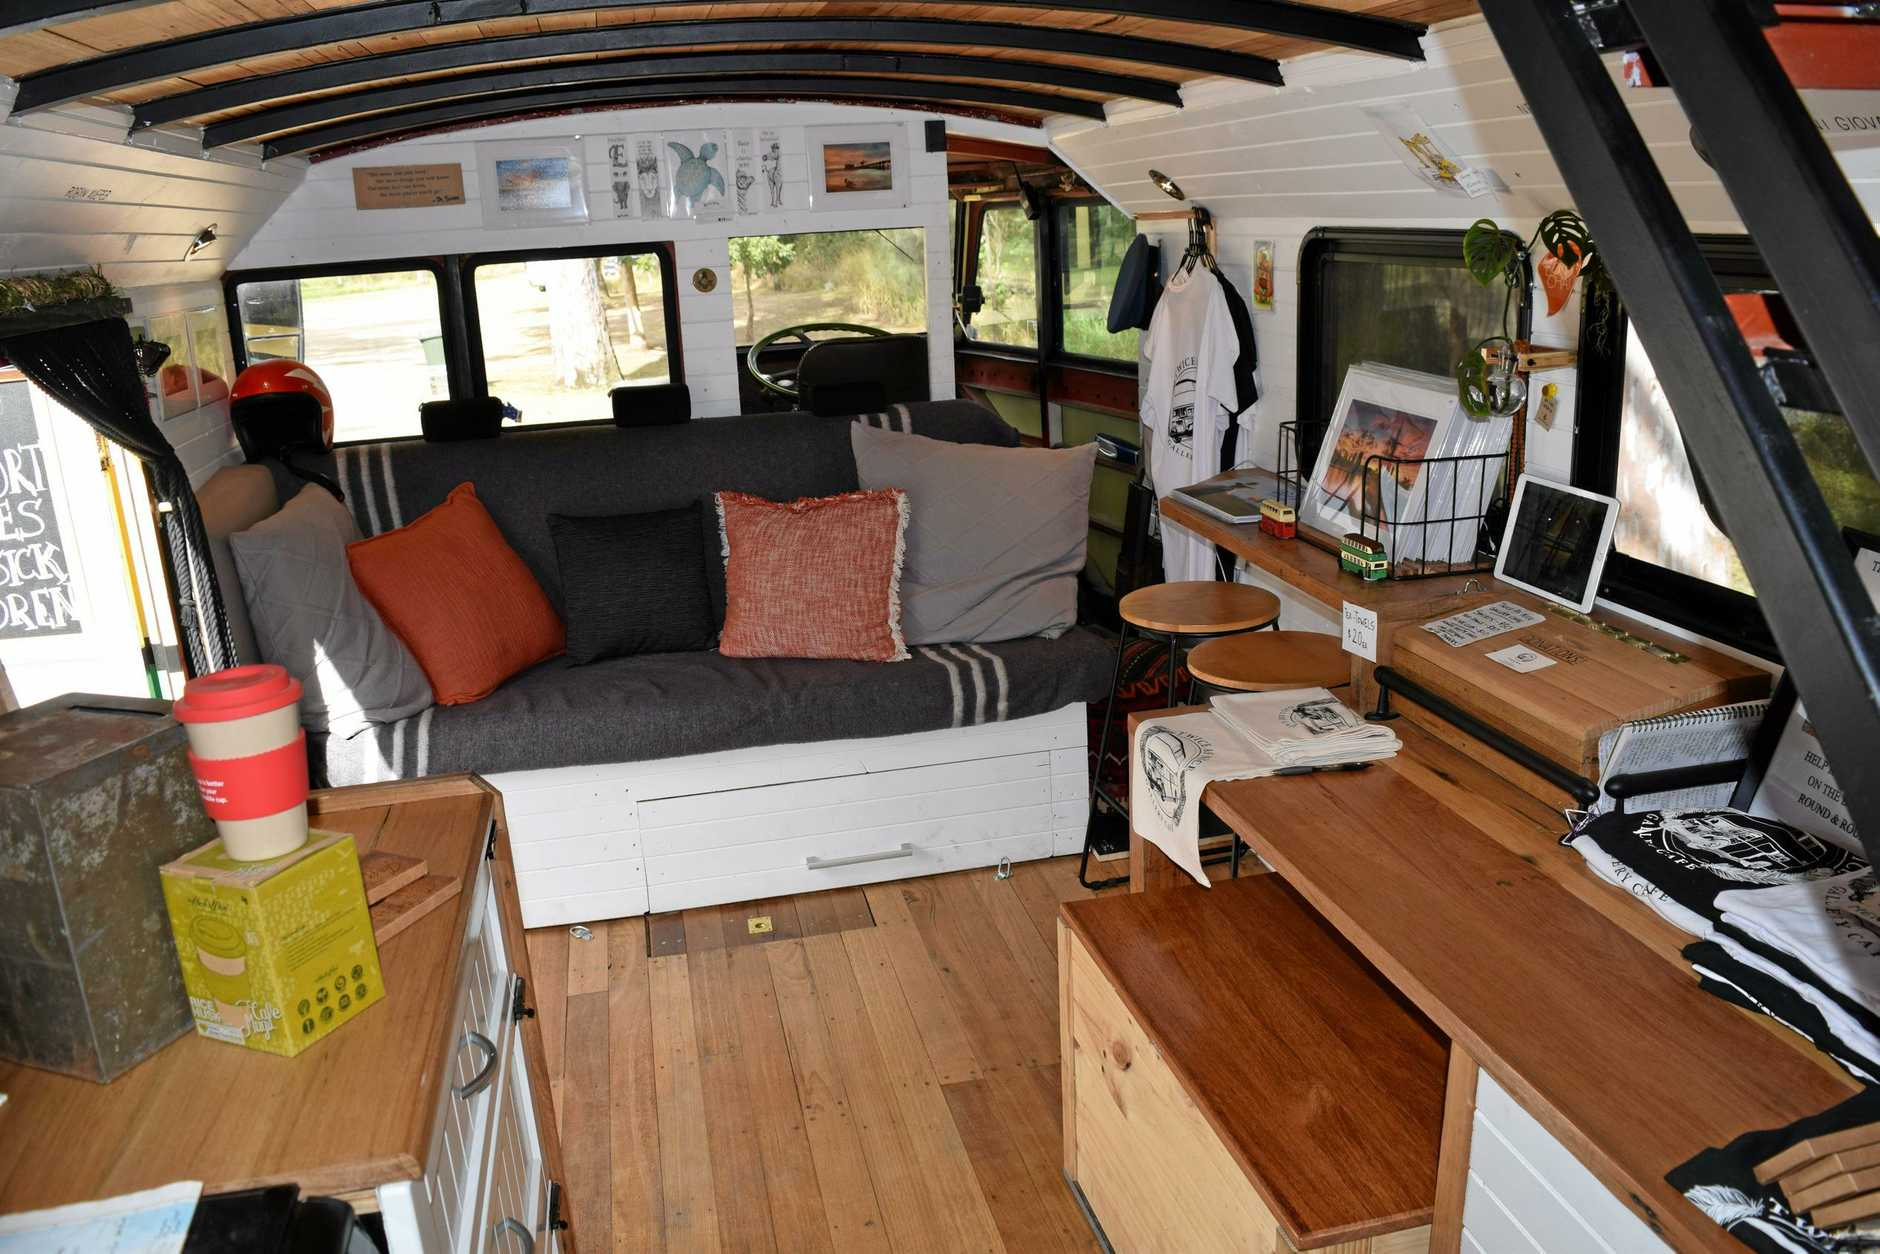 Lorie Norton is traveling around Australia in Corazon, his double decker, fully self-sufficient bus raising money and awareness for  Eli's Gift Foundation.